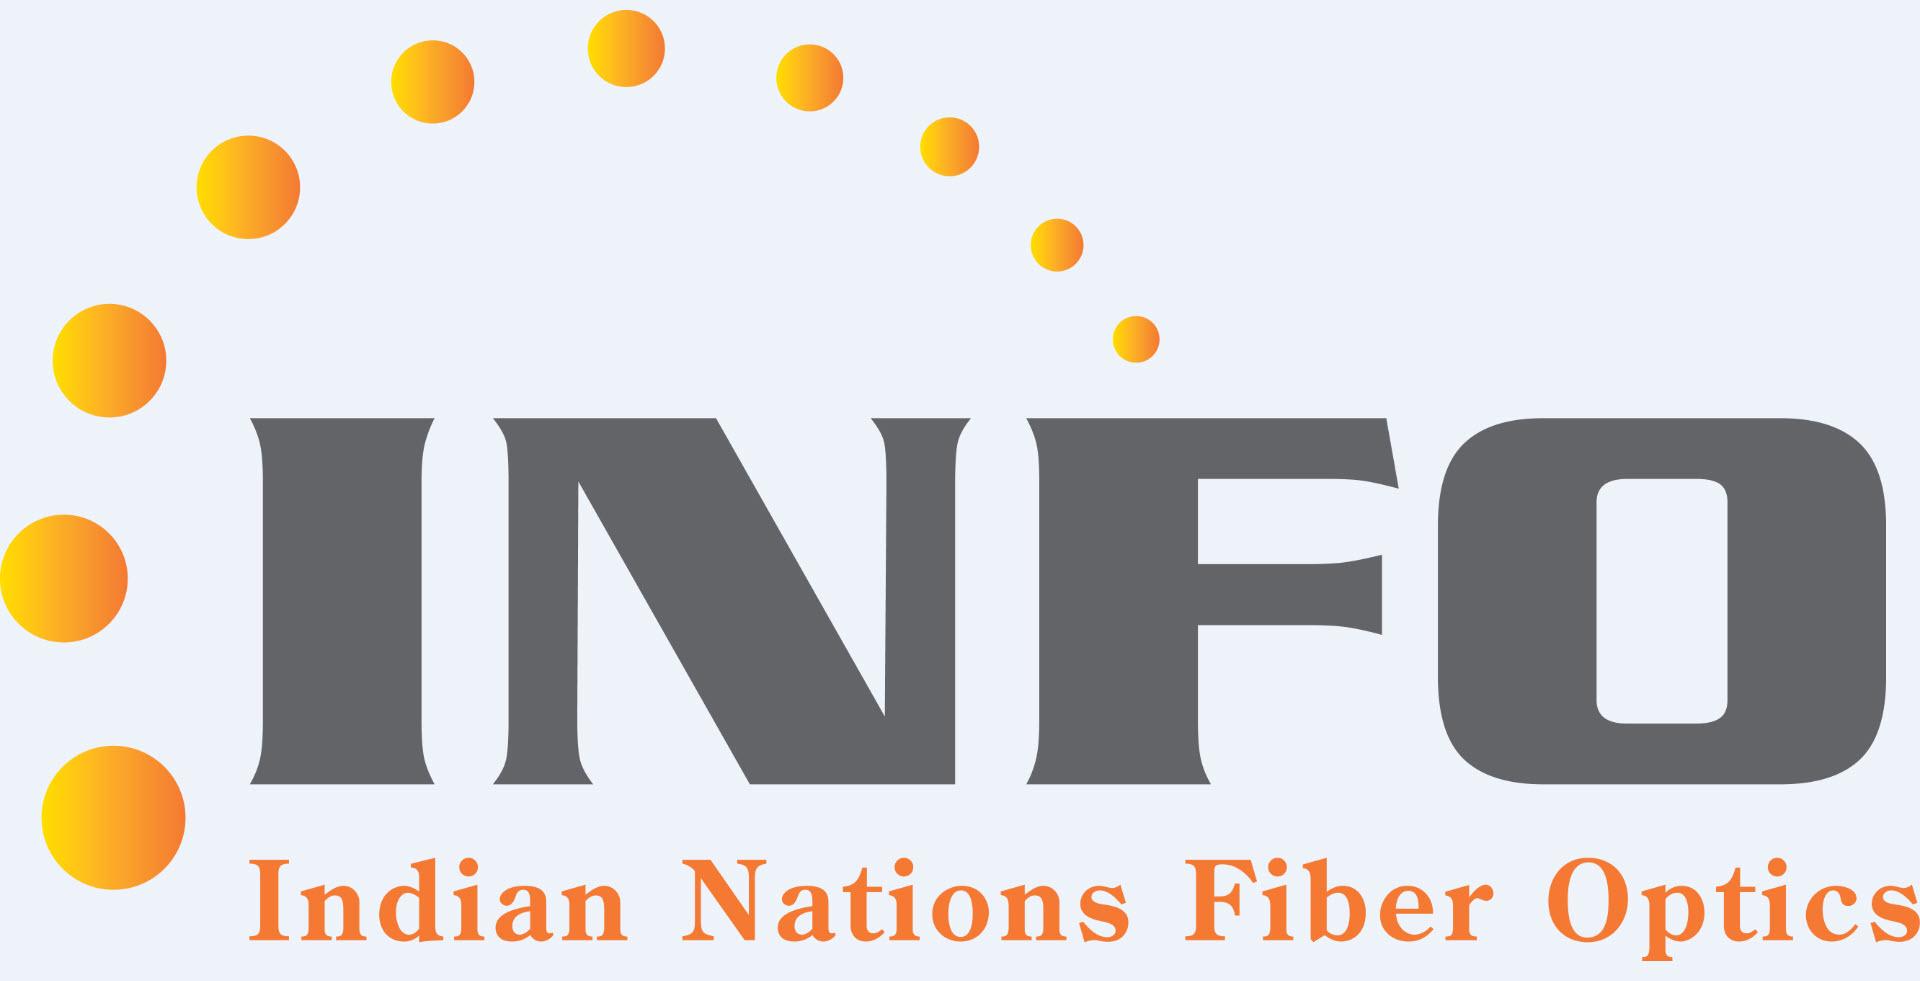 Indian Nations Fiber Optics